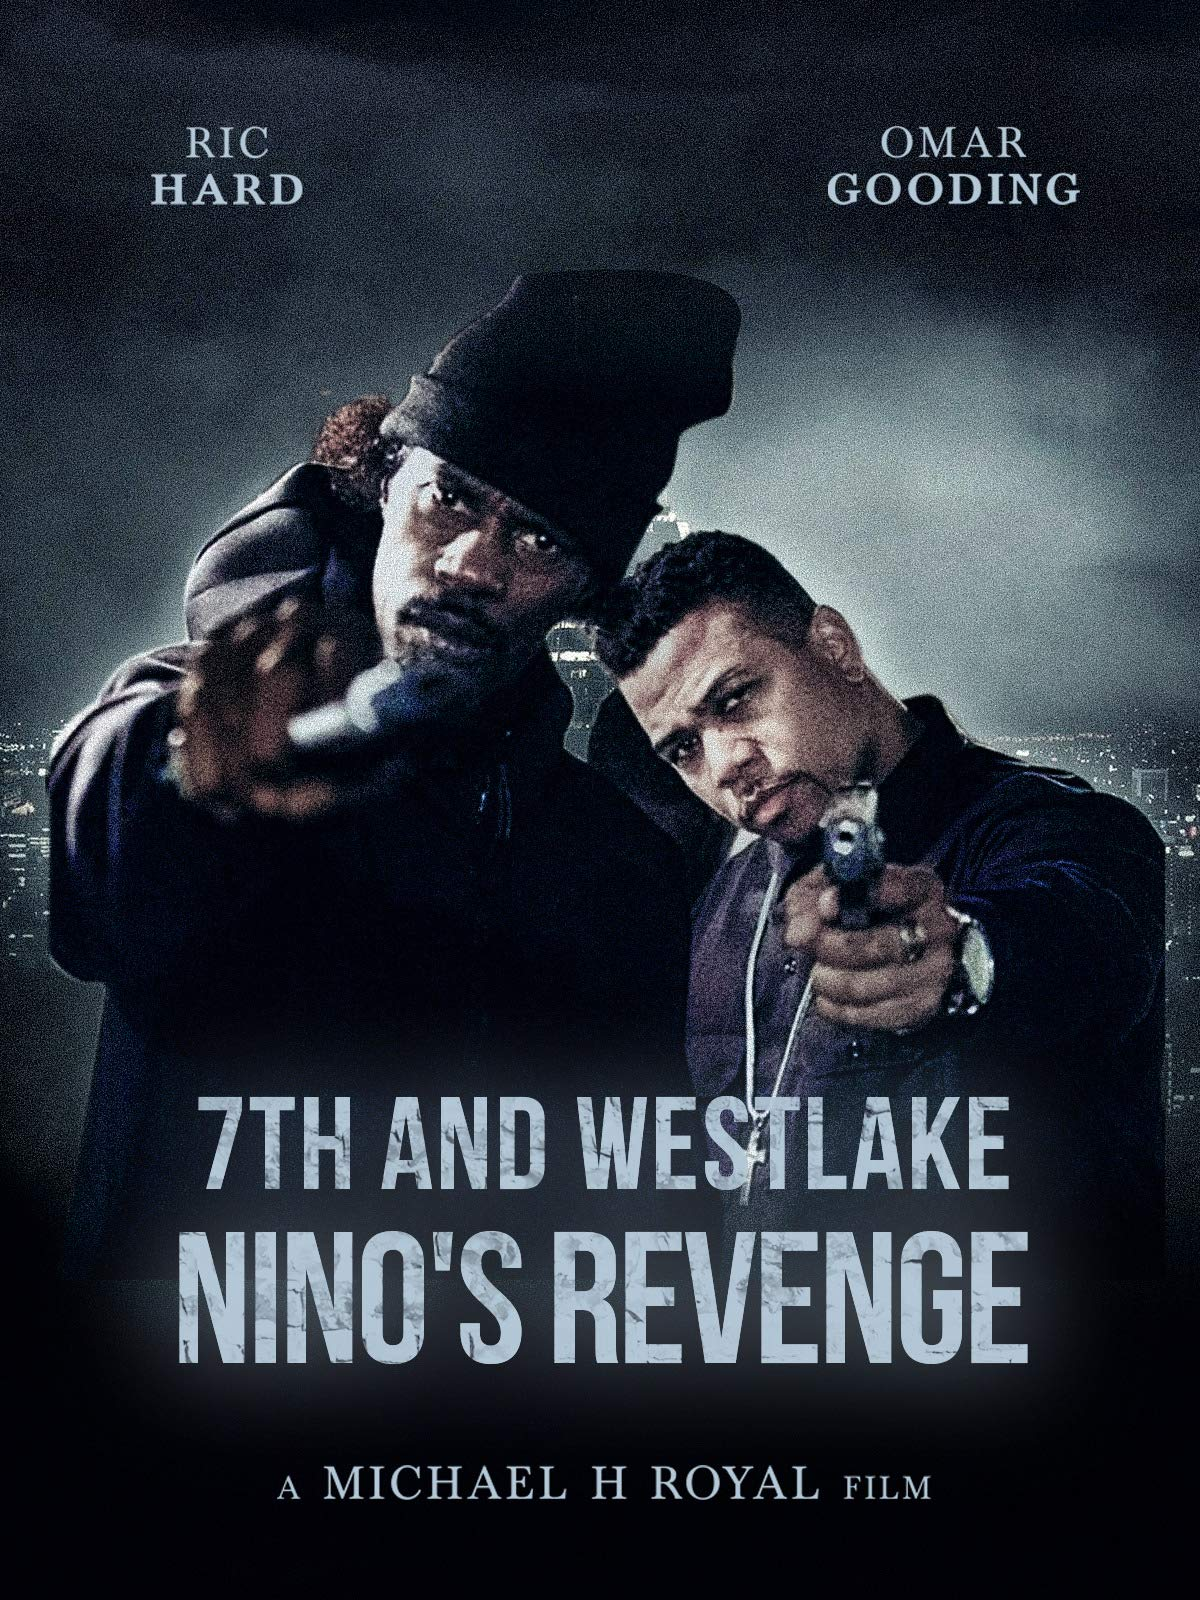 7th And Westlake Nino's Revenge